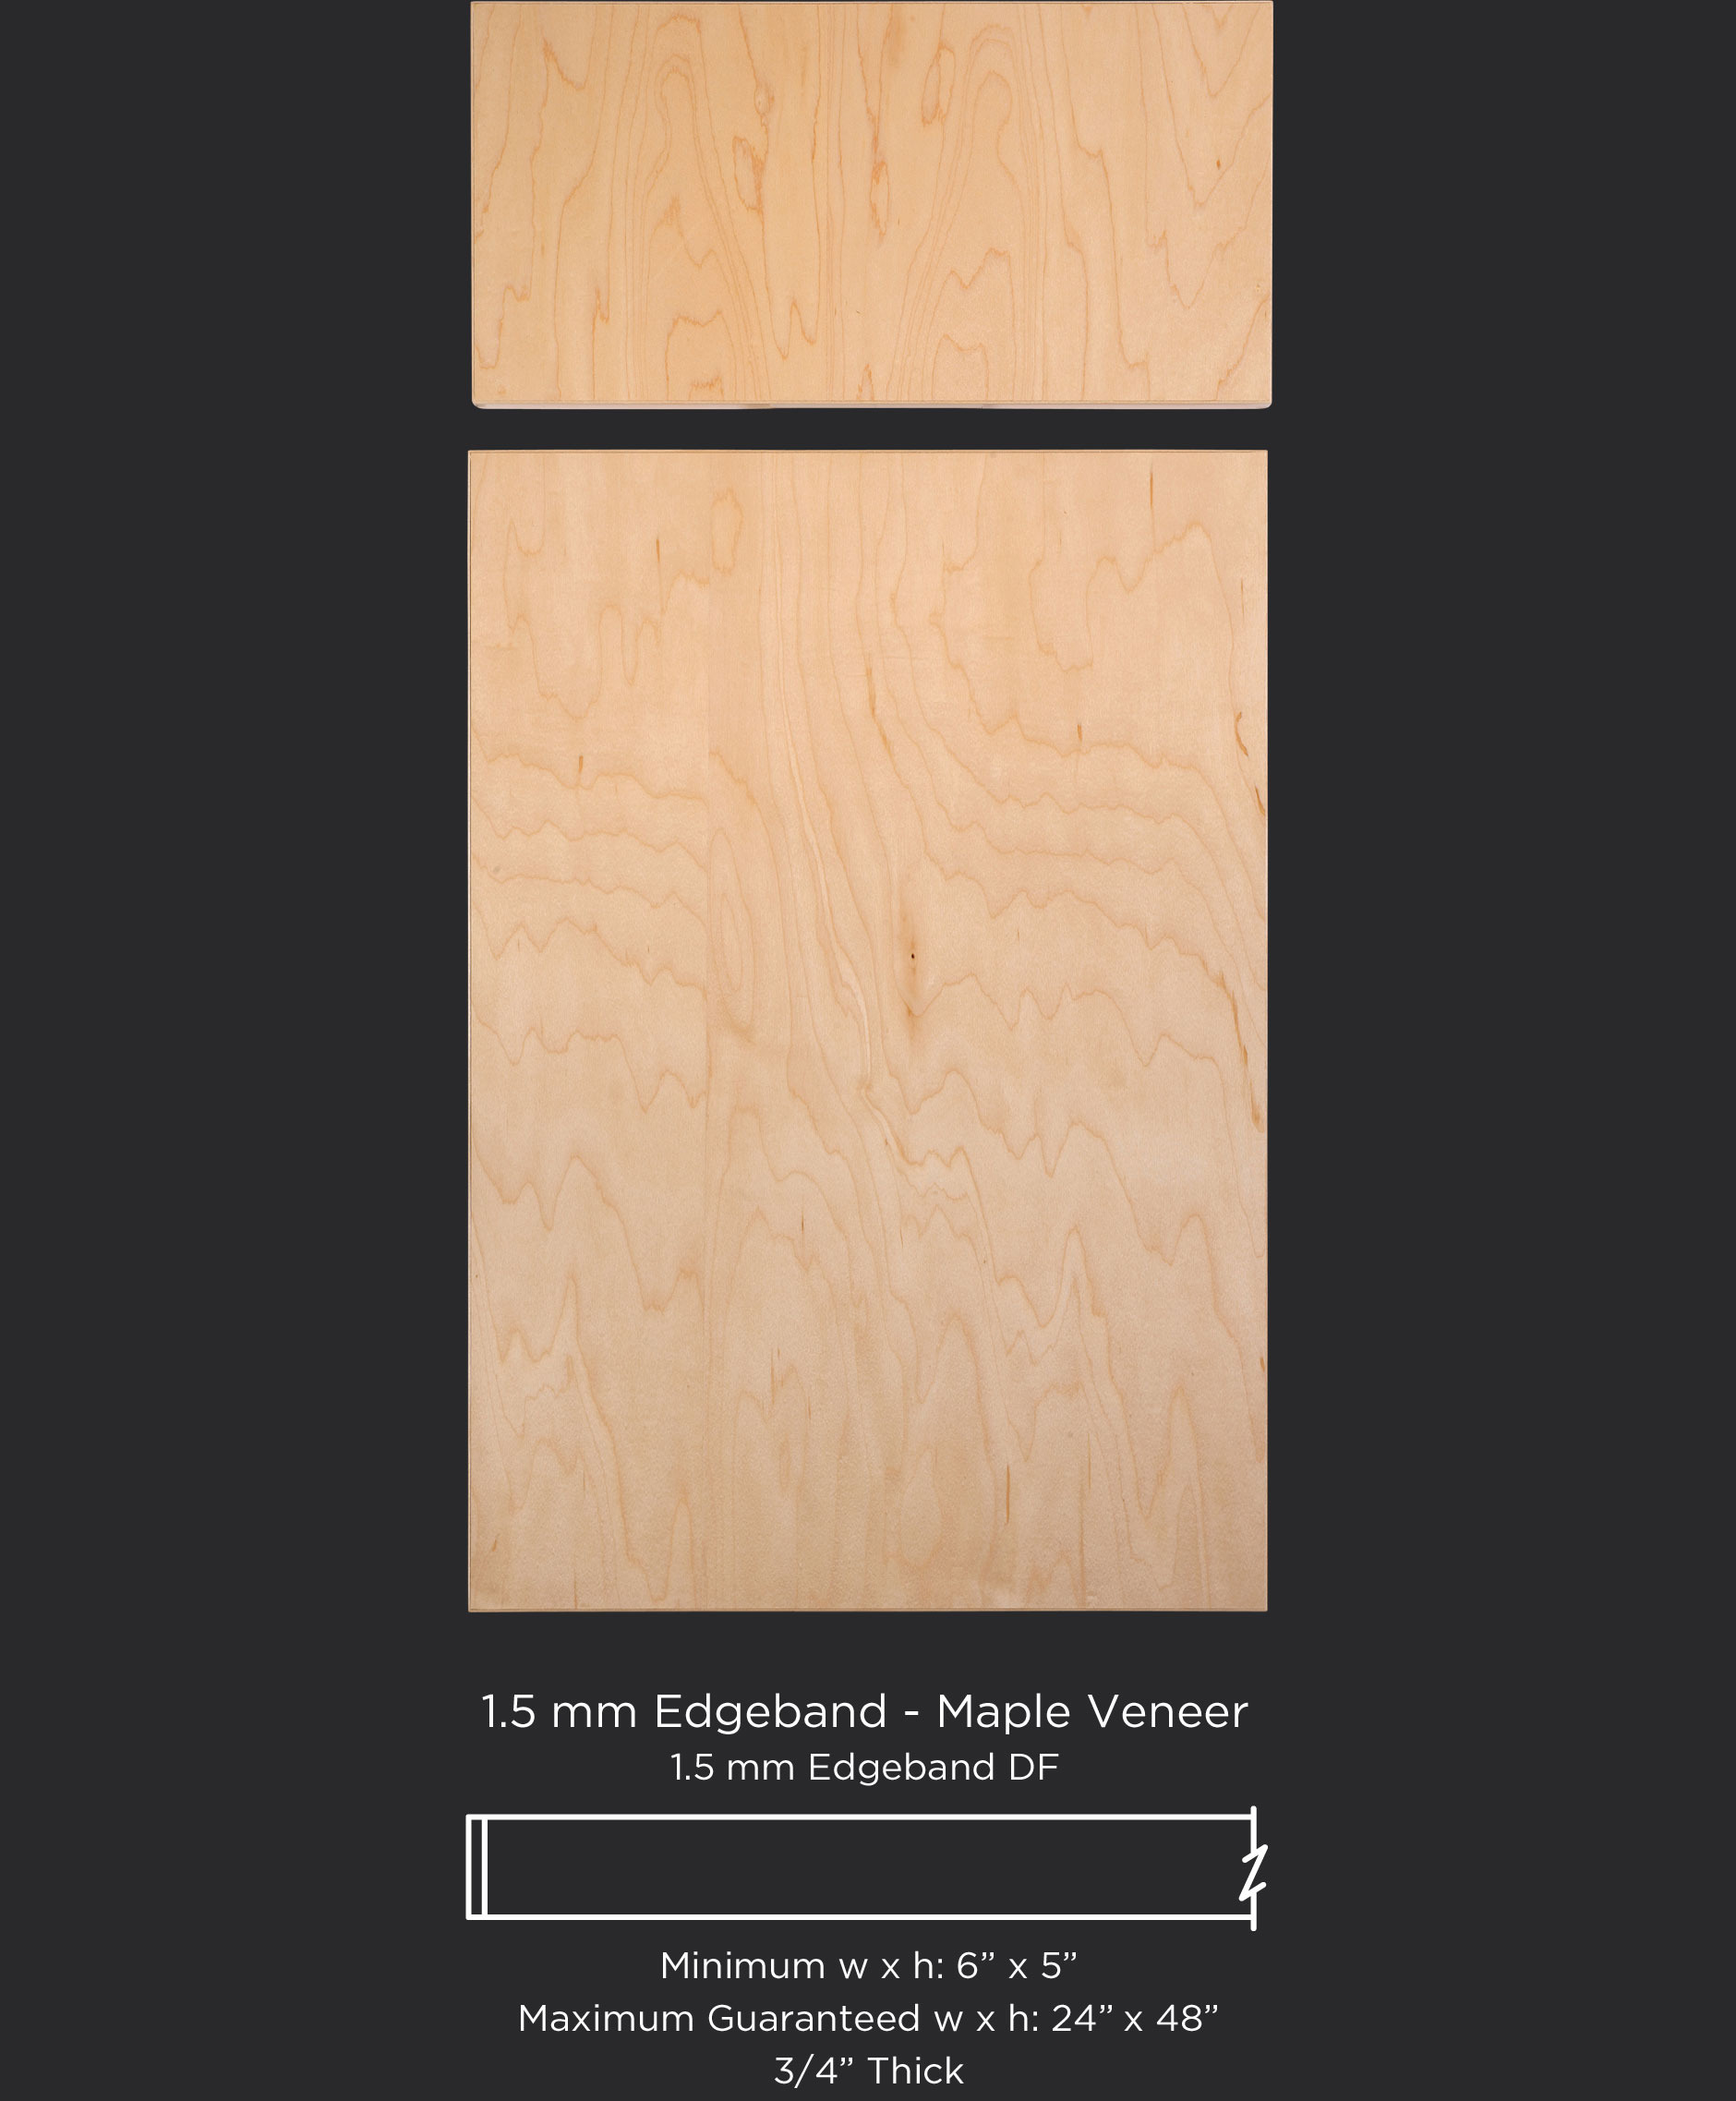 1 5mm EB Maple veneer